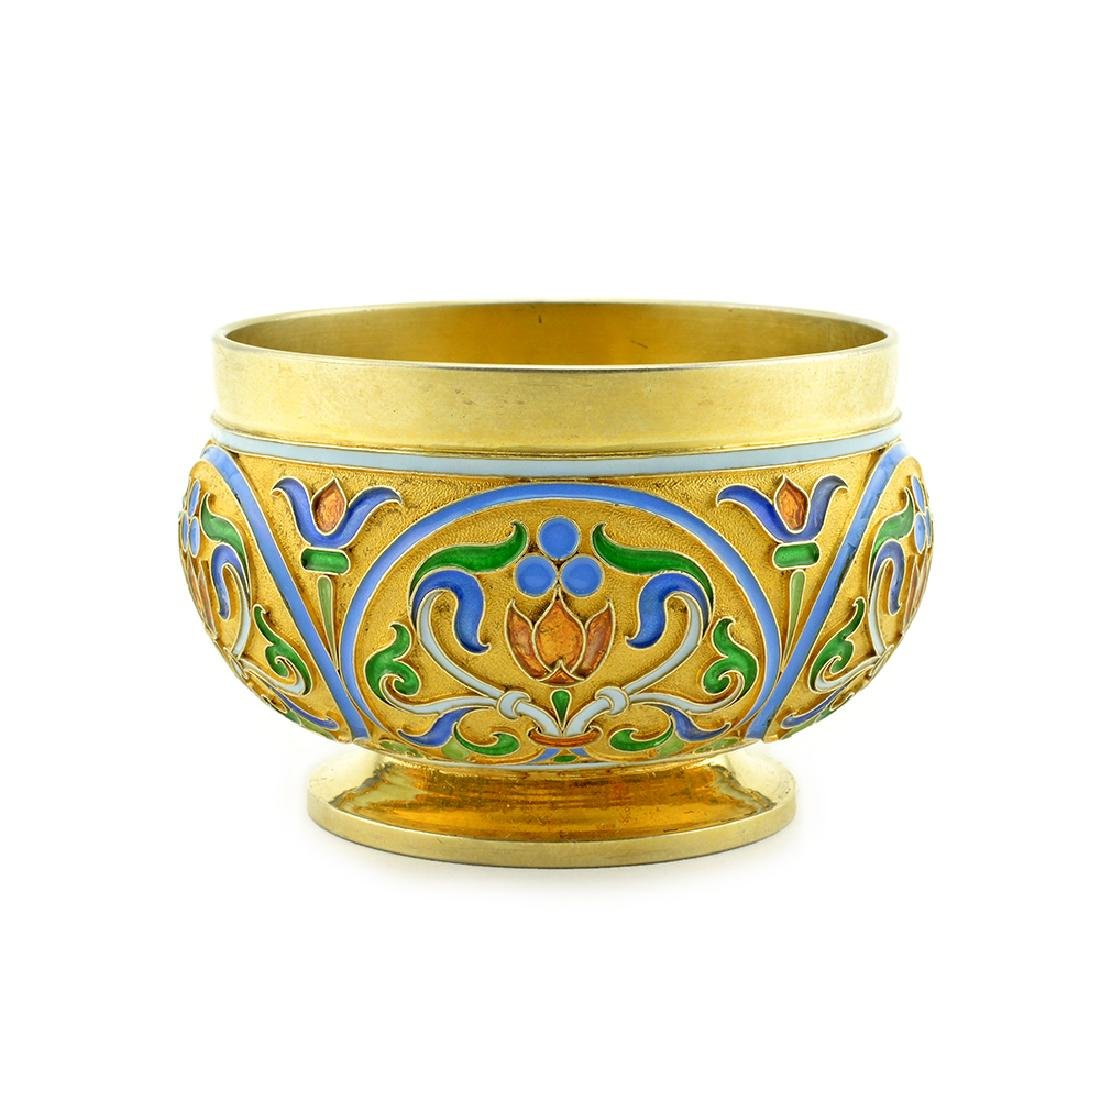 A rare Faberge gilded silver and cloisonne enamel salt